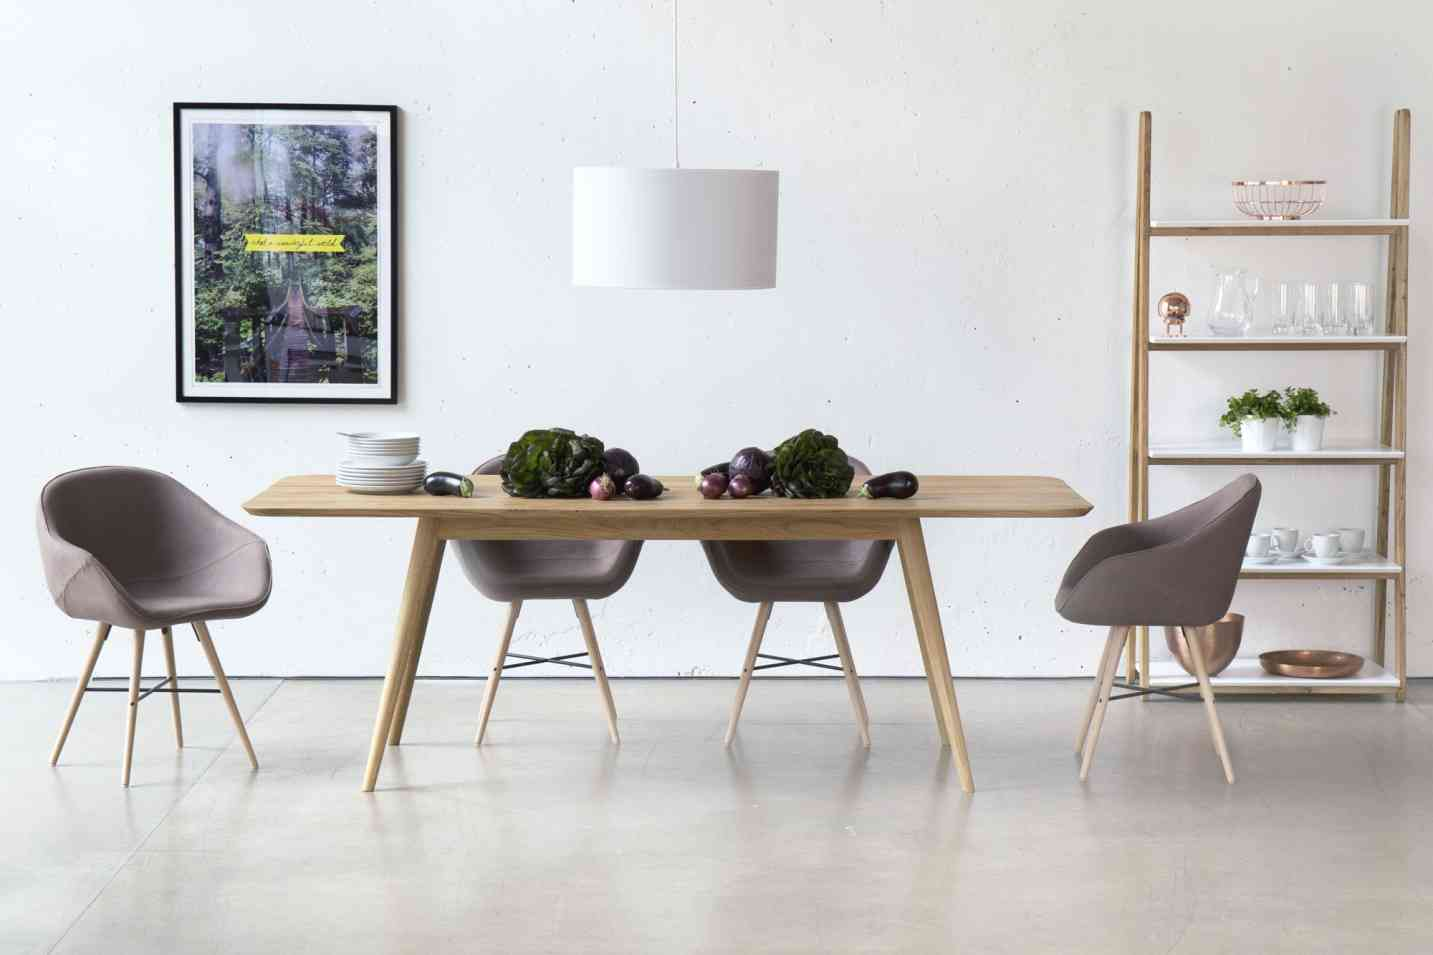 Scandinavian Style Dining Room Table: 6 Smart Ways To Boost Property Value Through Good Design